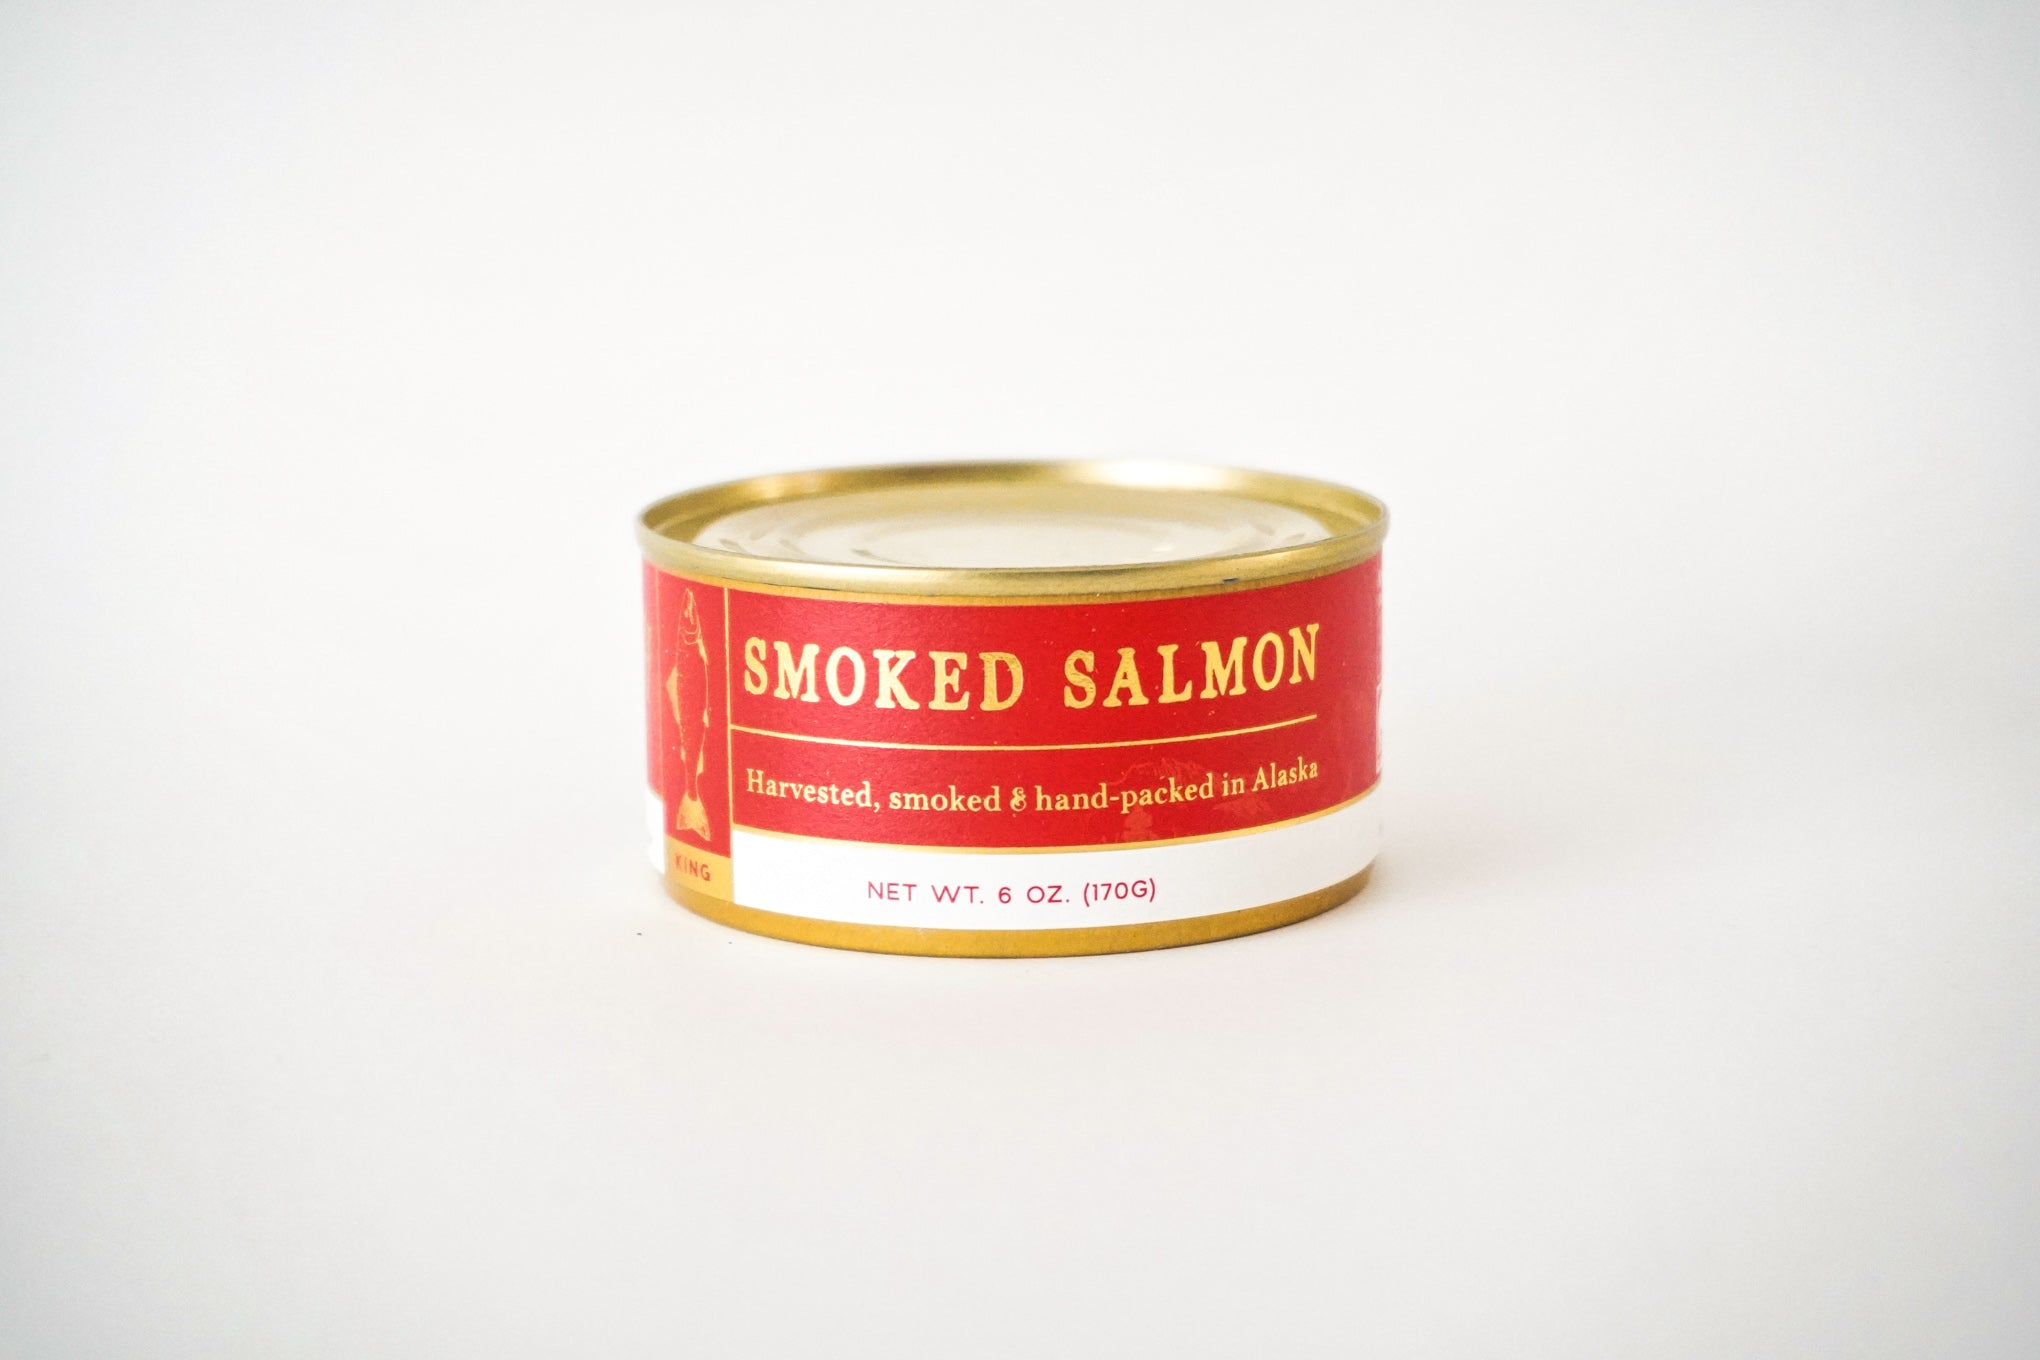 Smoked salmon can